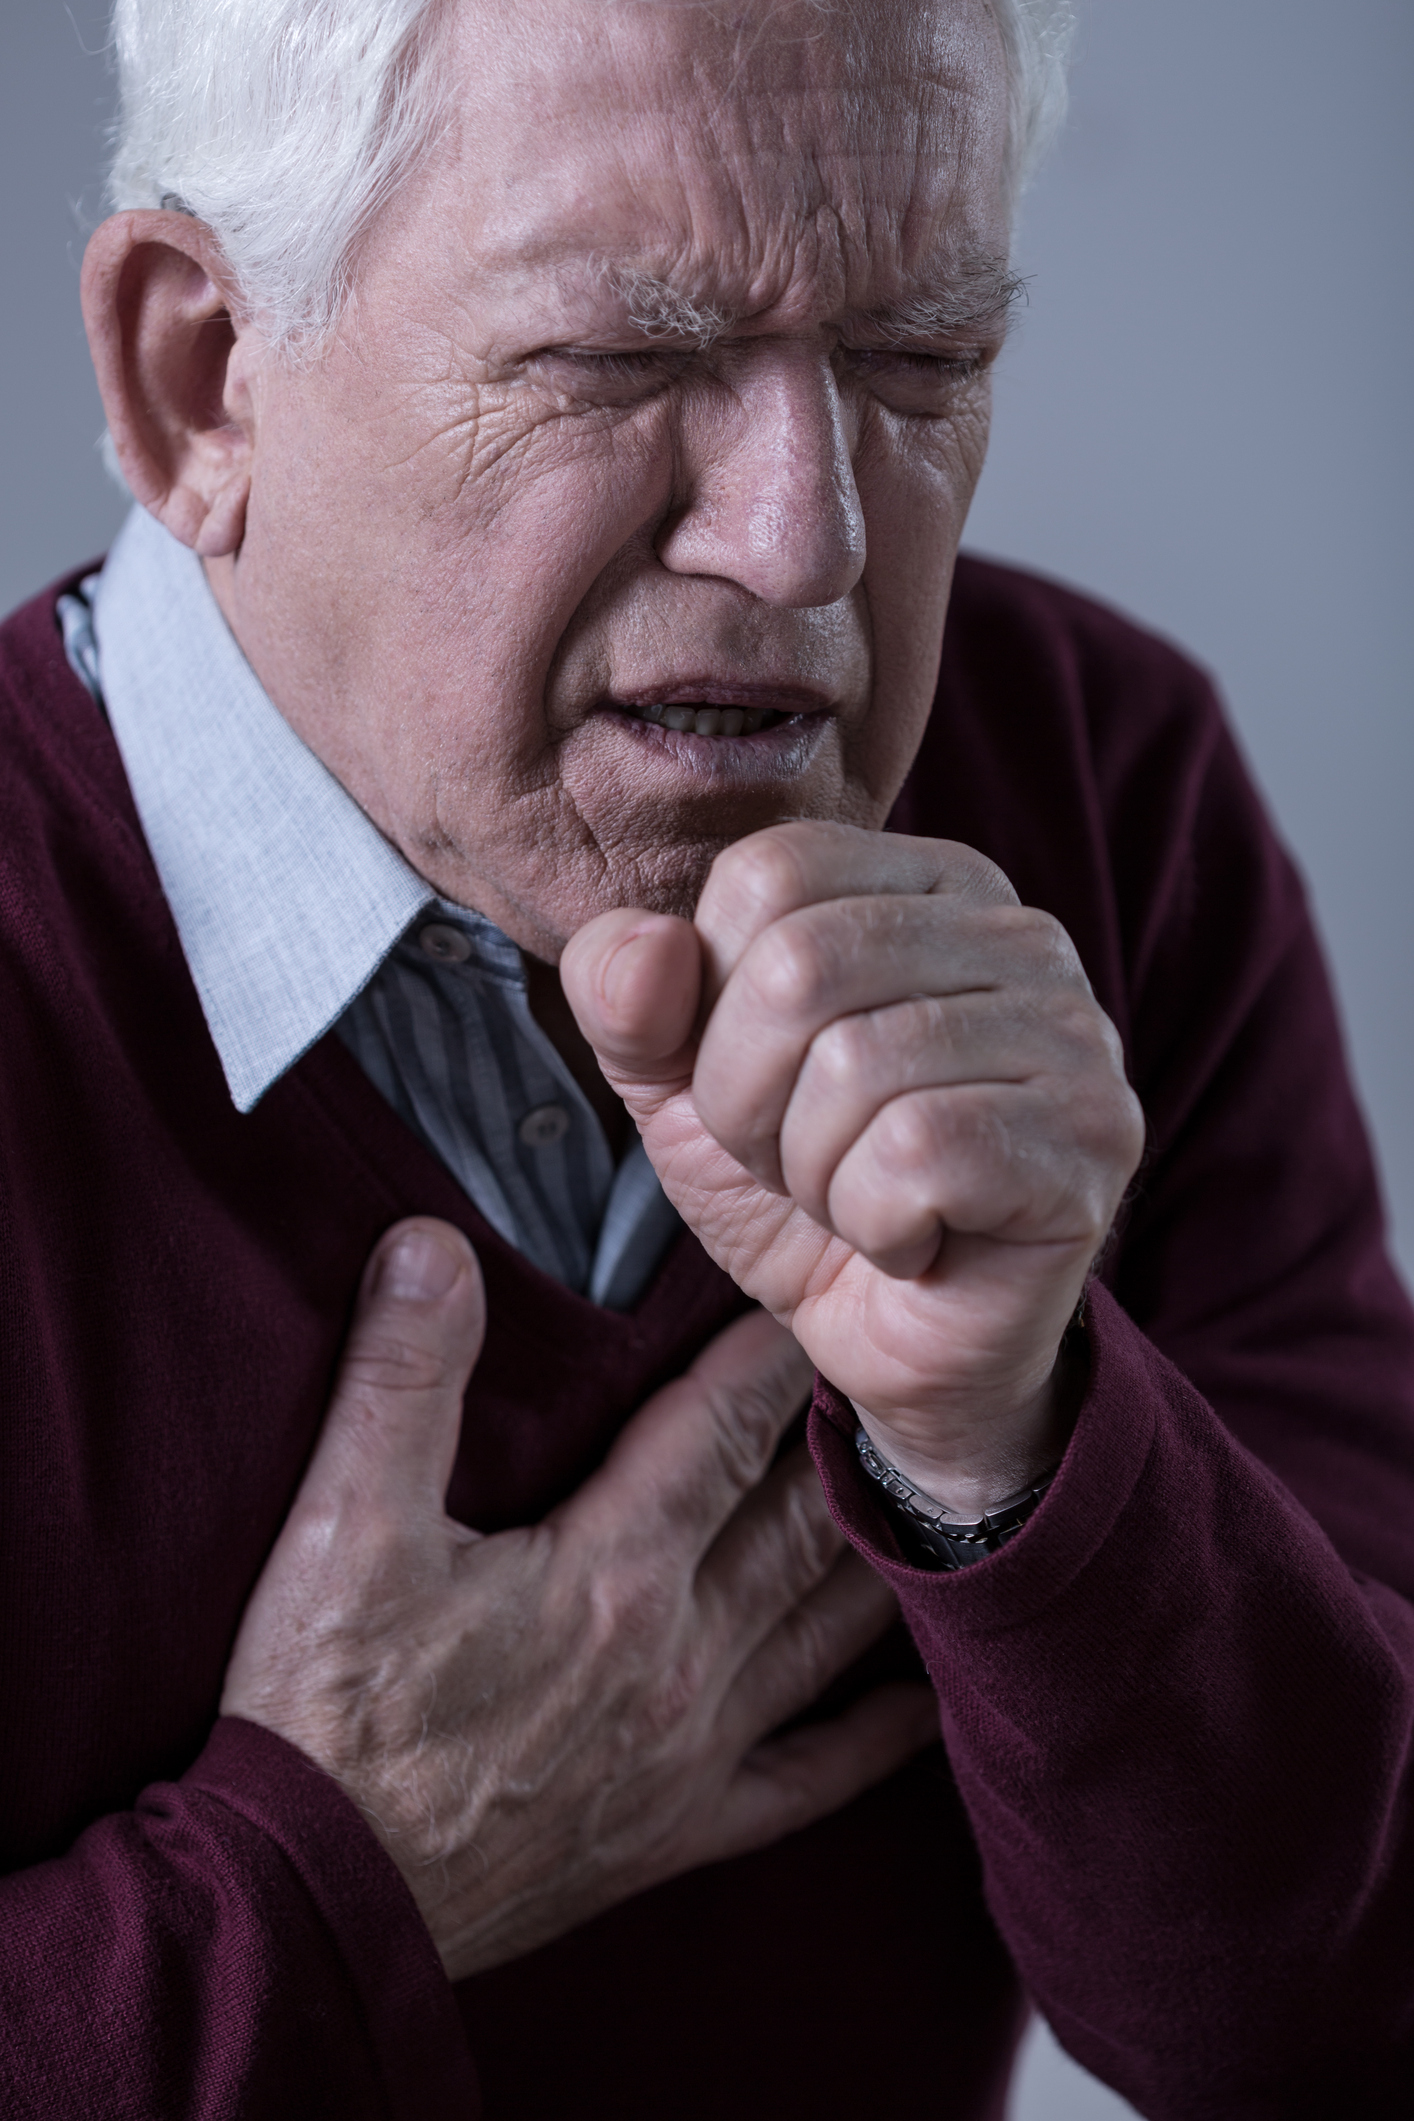 COPD, COPD Exacerbations, Chronic Obstructive Pulmonary Disease, Exacerbation